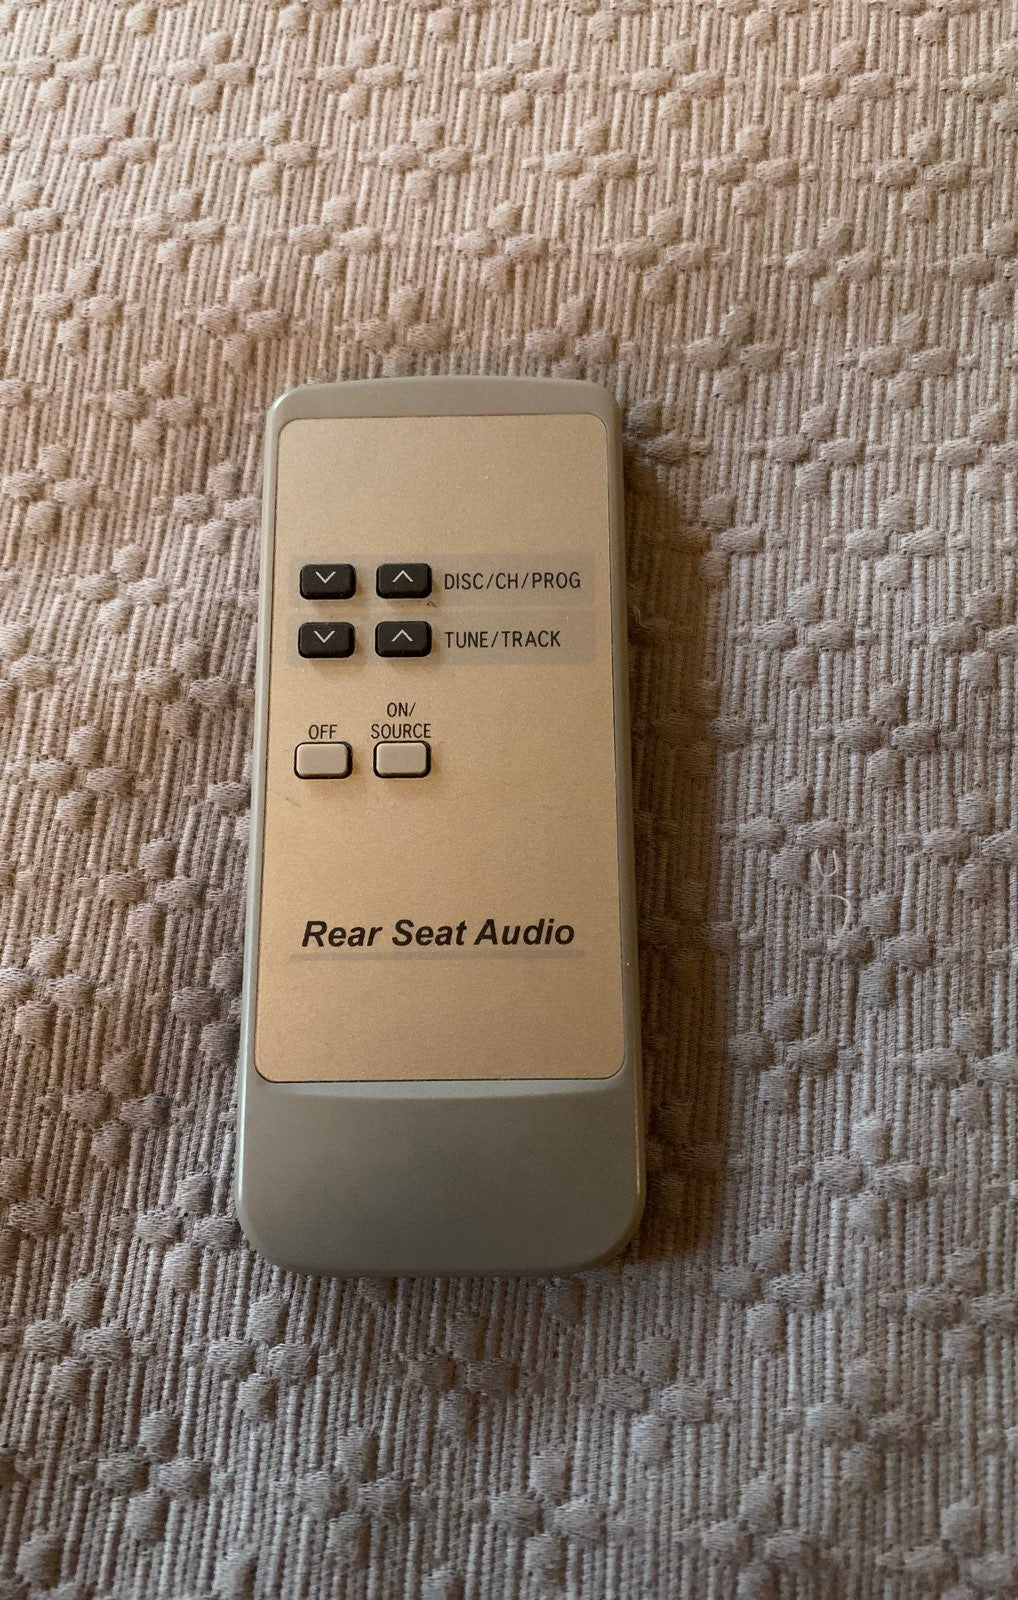 Rear sear audio remote control for toyot